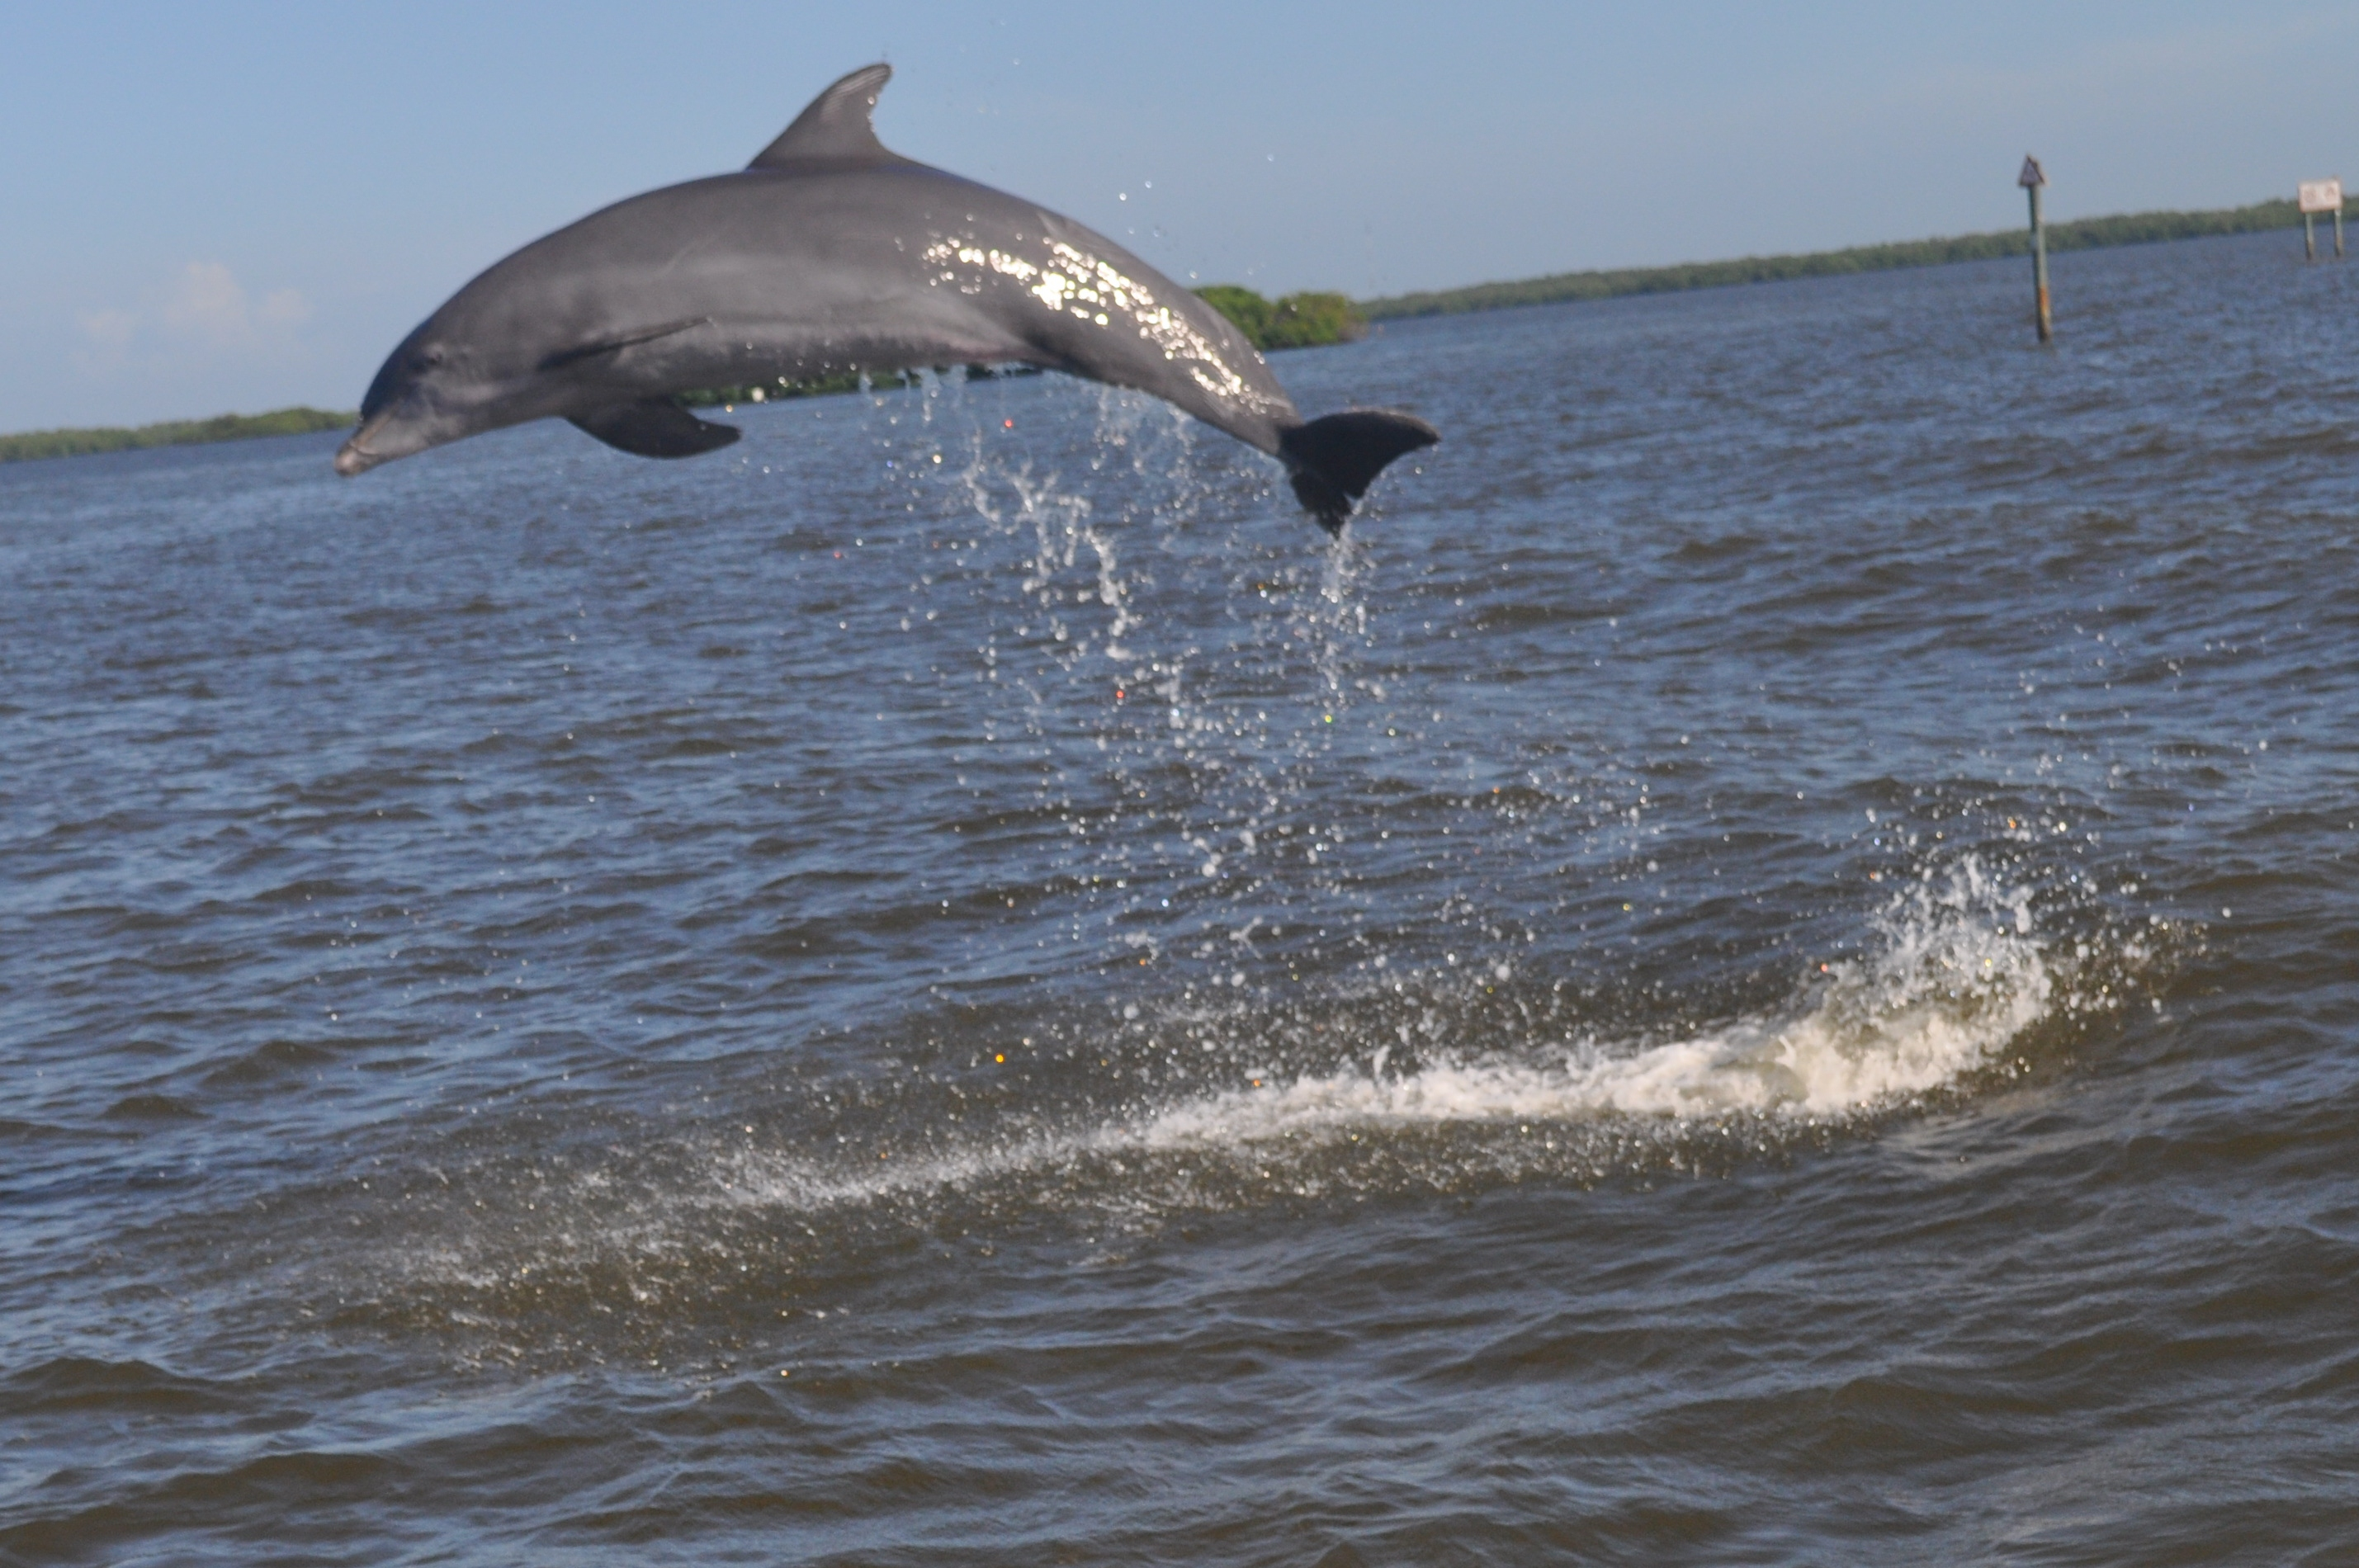 Fort myers beach dolphin cruise and fishing charter good for Fort myers beach fishing